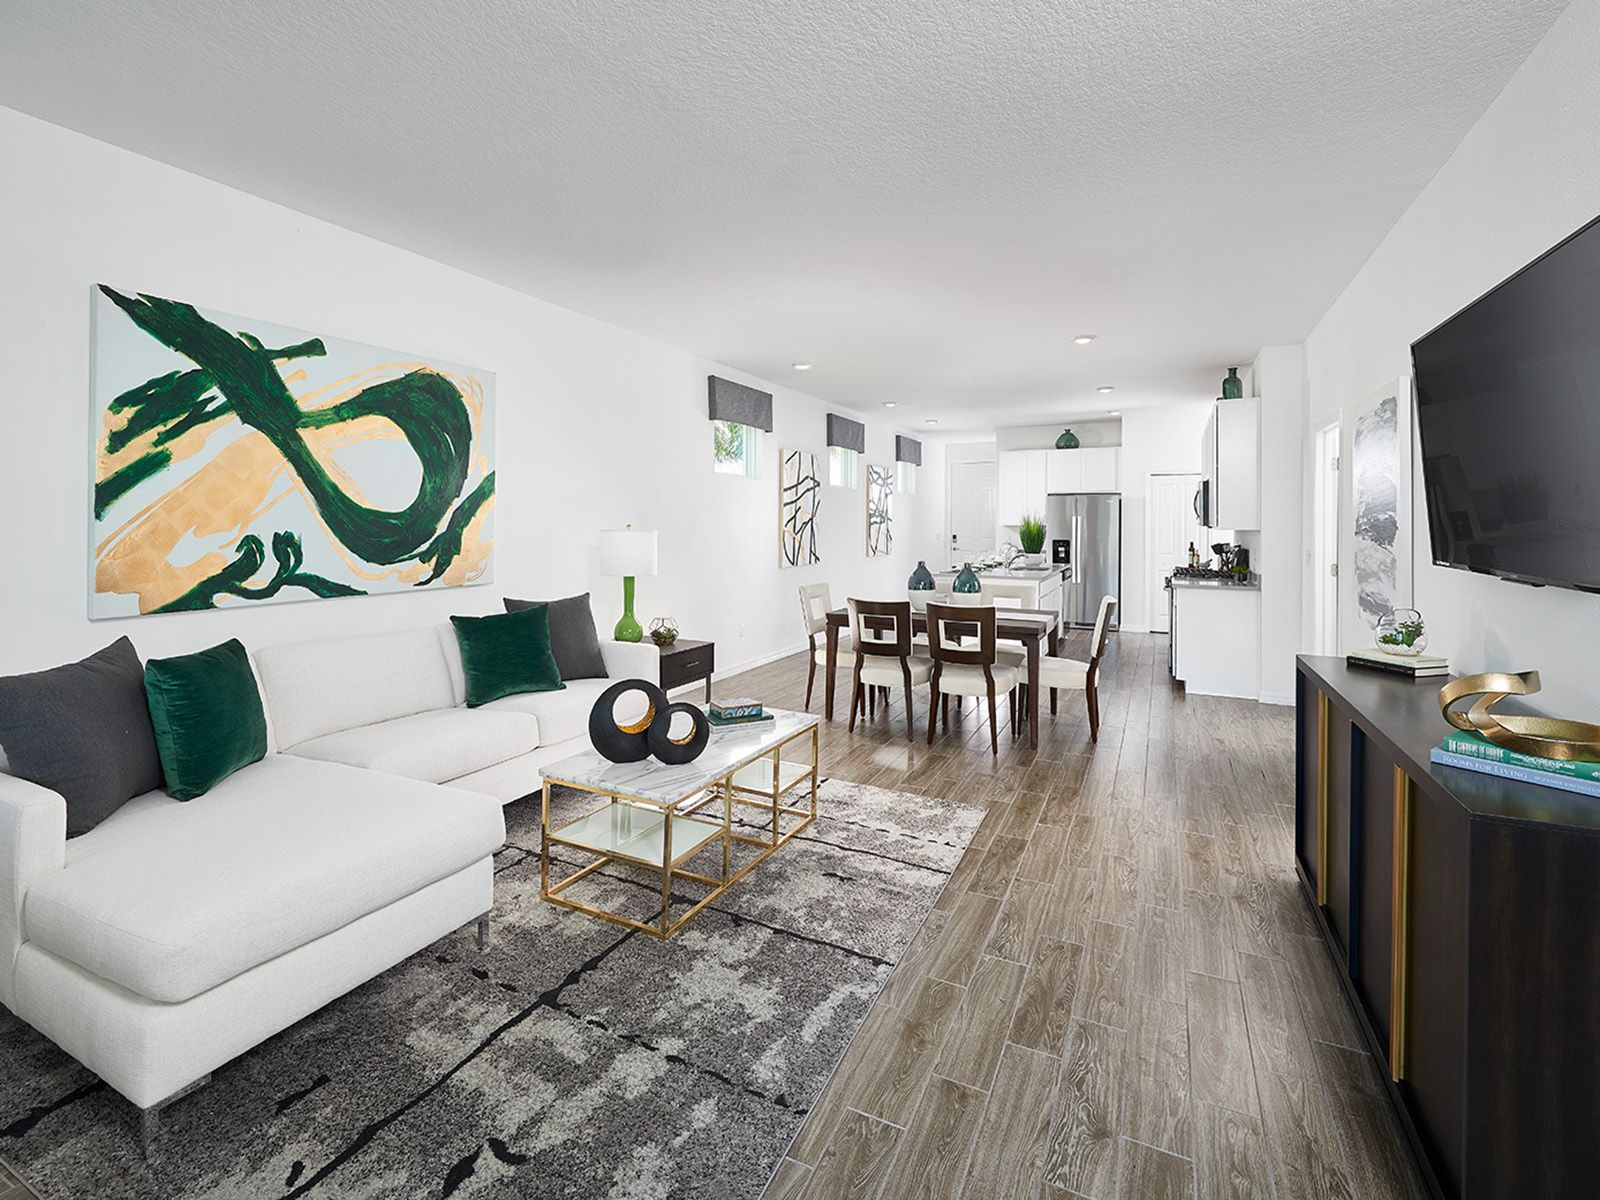 Living Area featured in the Poinciana - Meritage Homes  By Crown Community Development